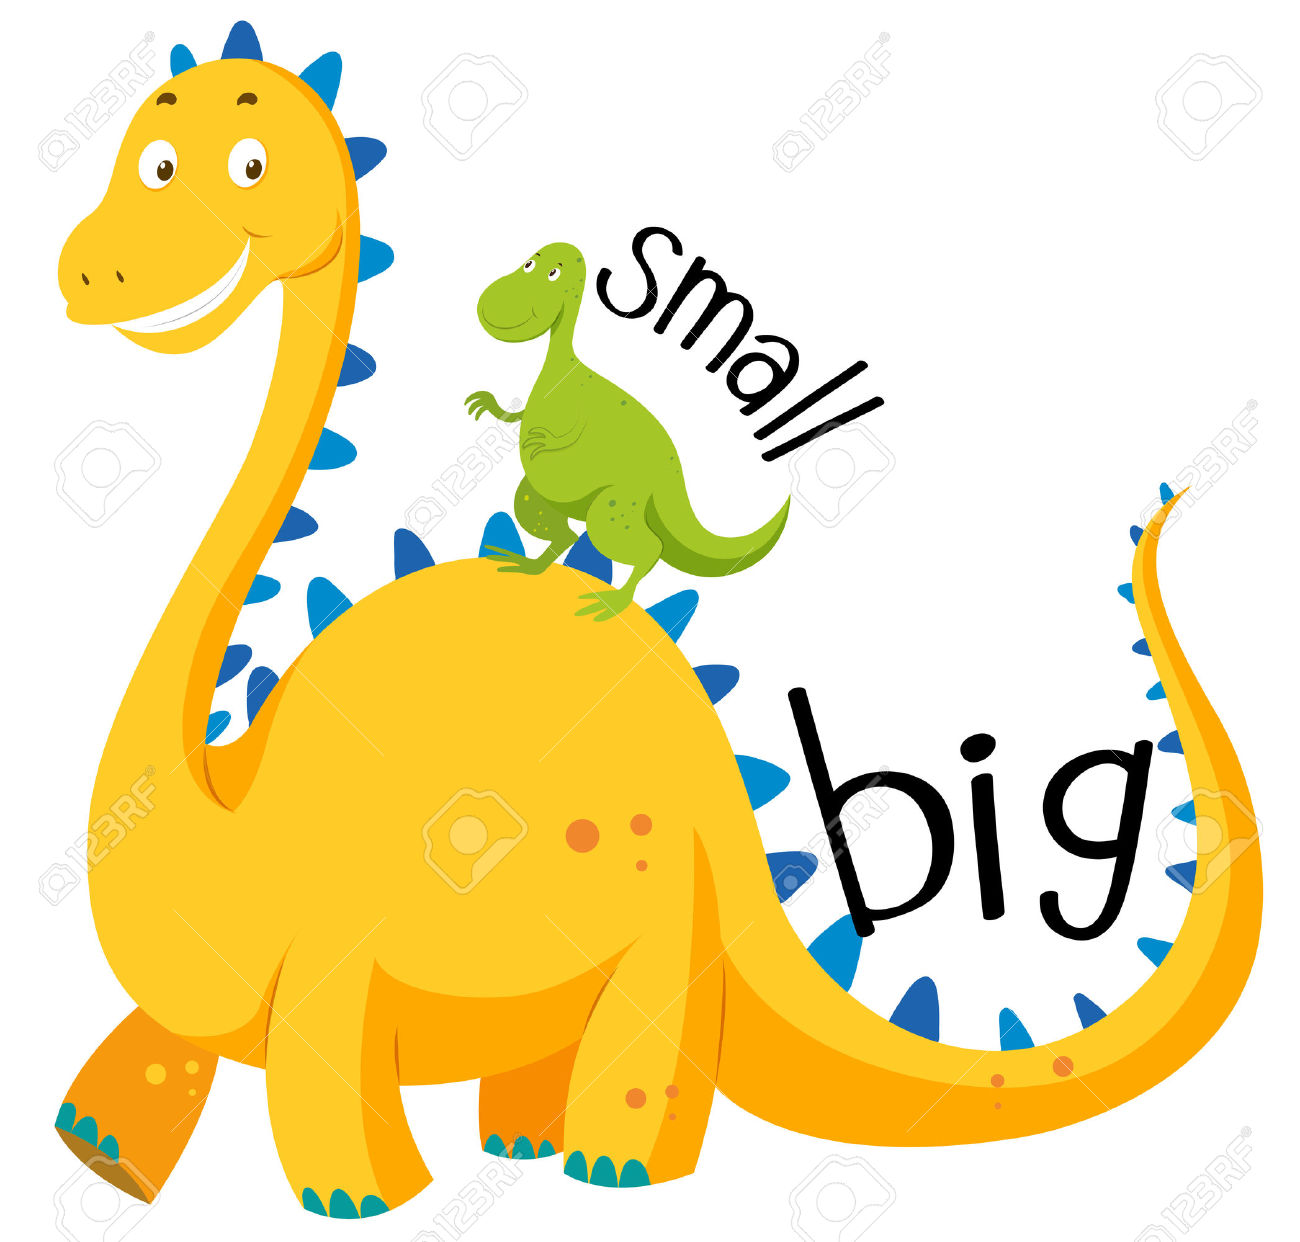 Big Elephant In A Small Box Clipart.